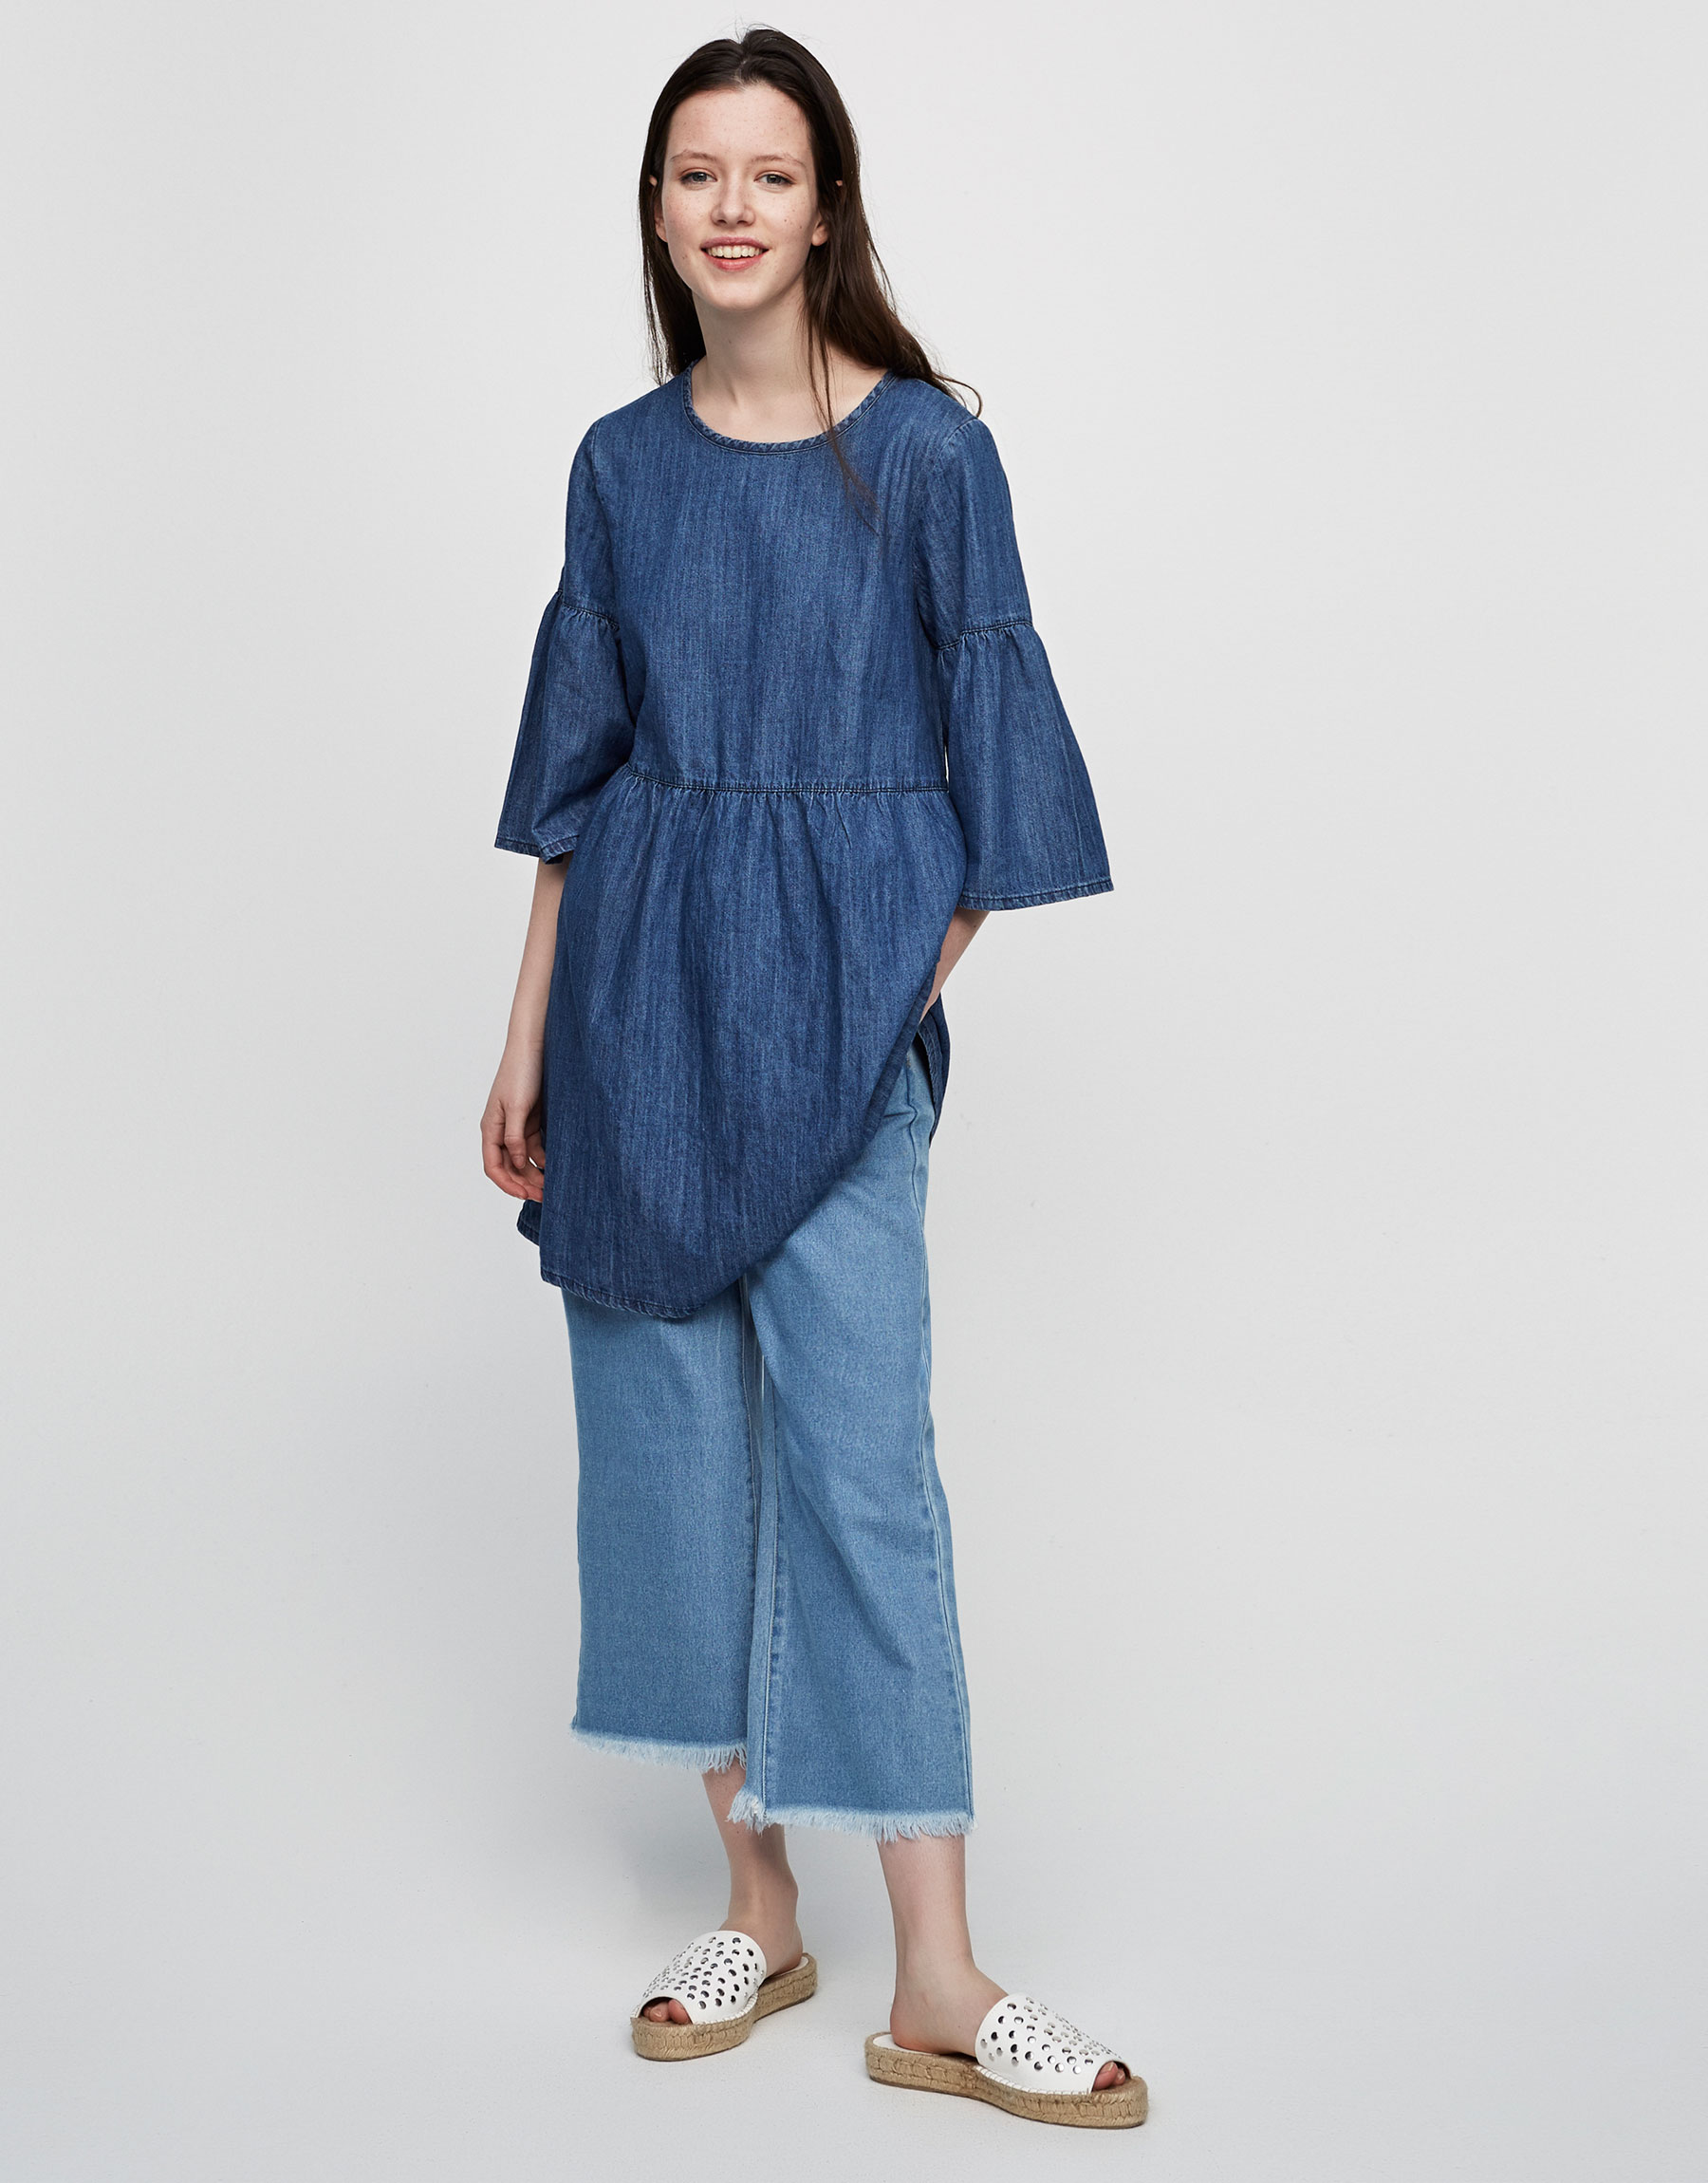 Denim dress with frilled sleeves